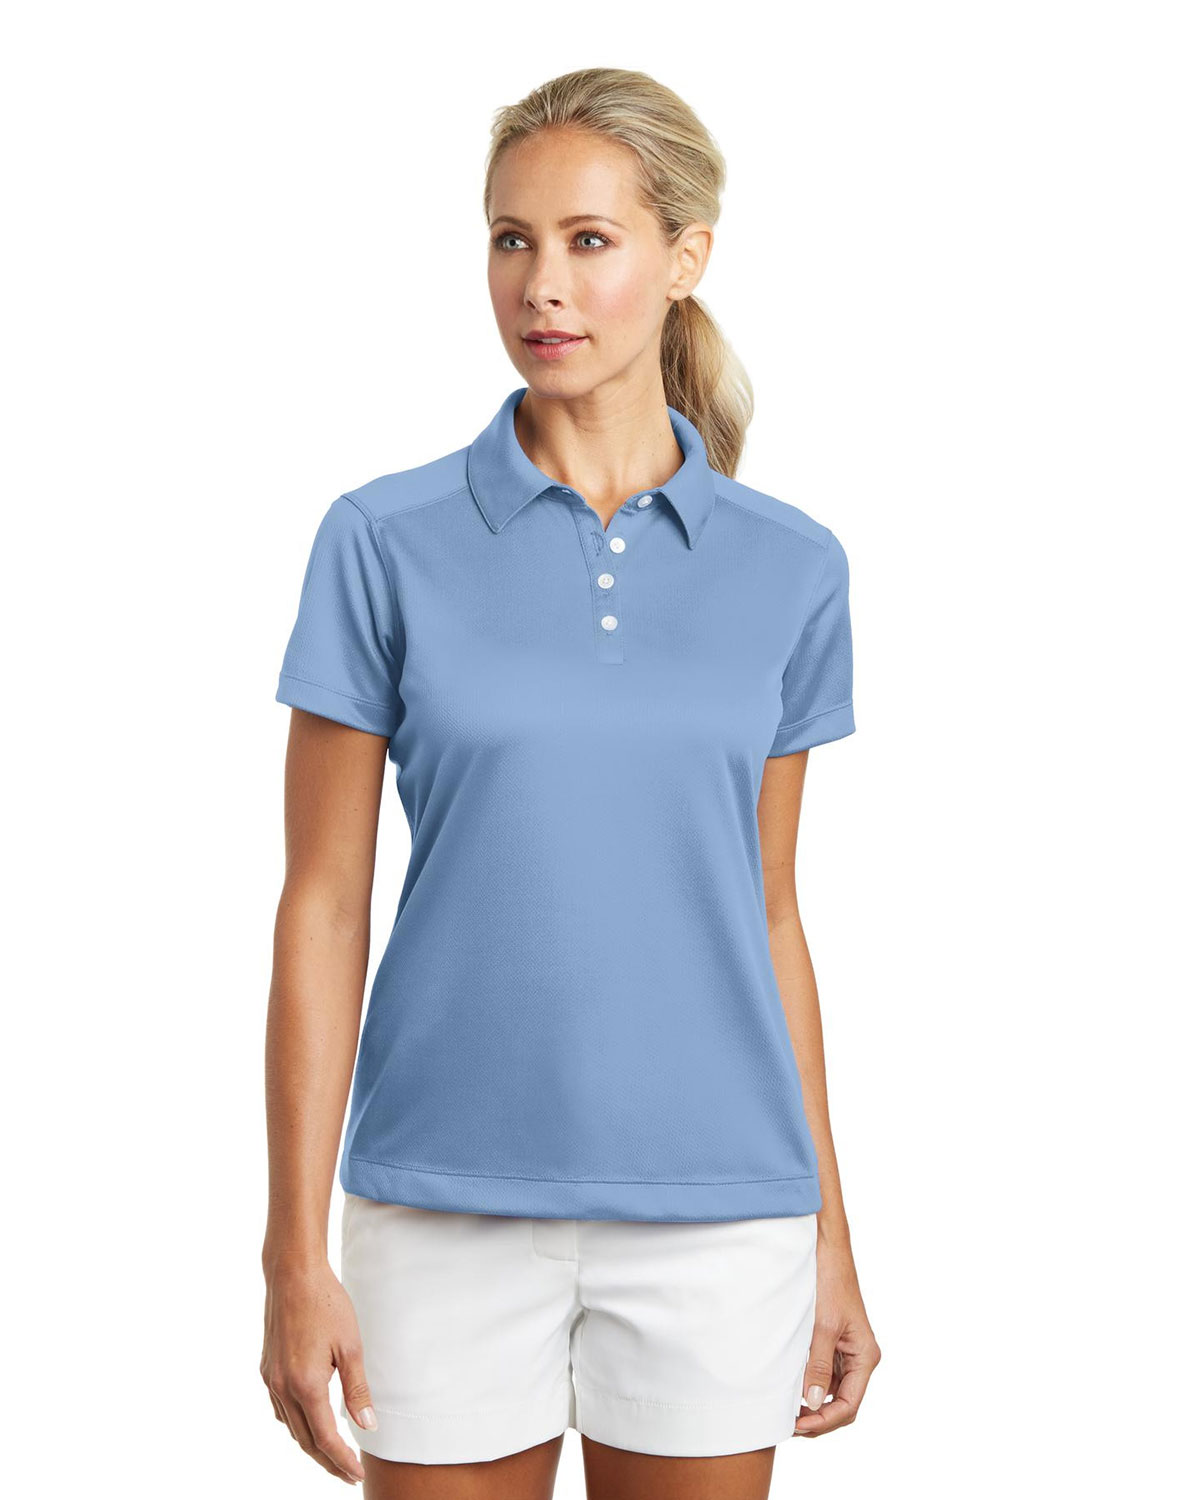 LADIES DRI-FIT PEBBLE TEXTURE POLOS